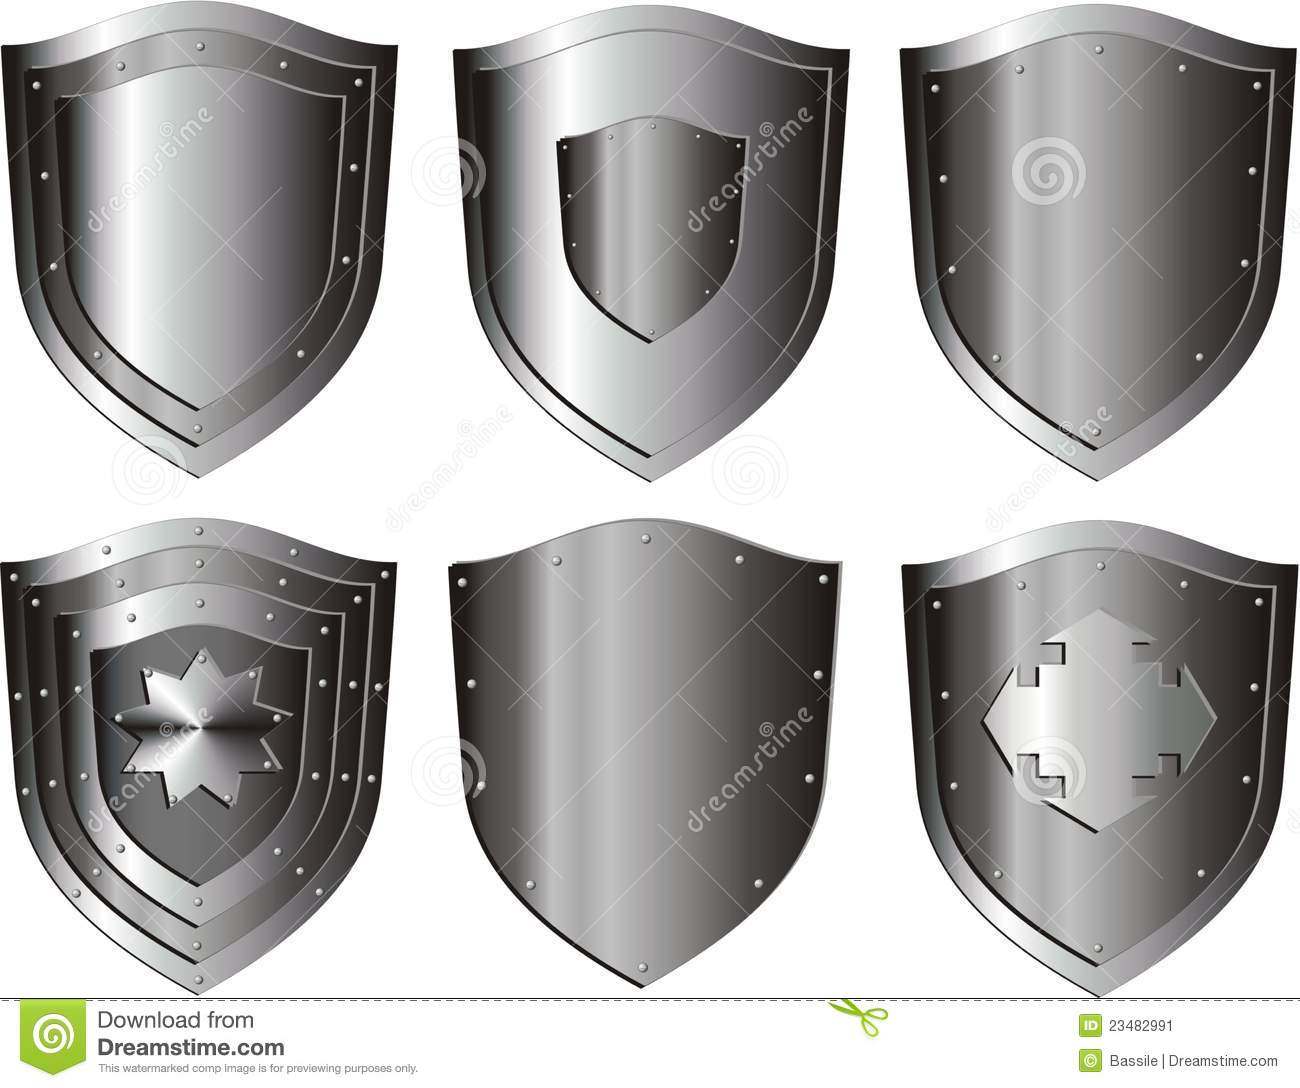 Shield design set royalty free stock photos image 5051988 - Silver Shield Set Stock Image Silver Shield Clipart